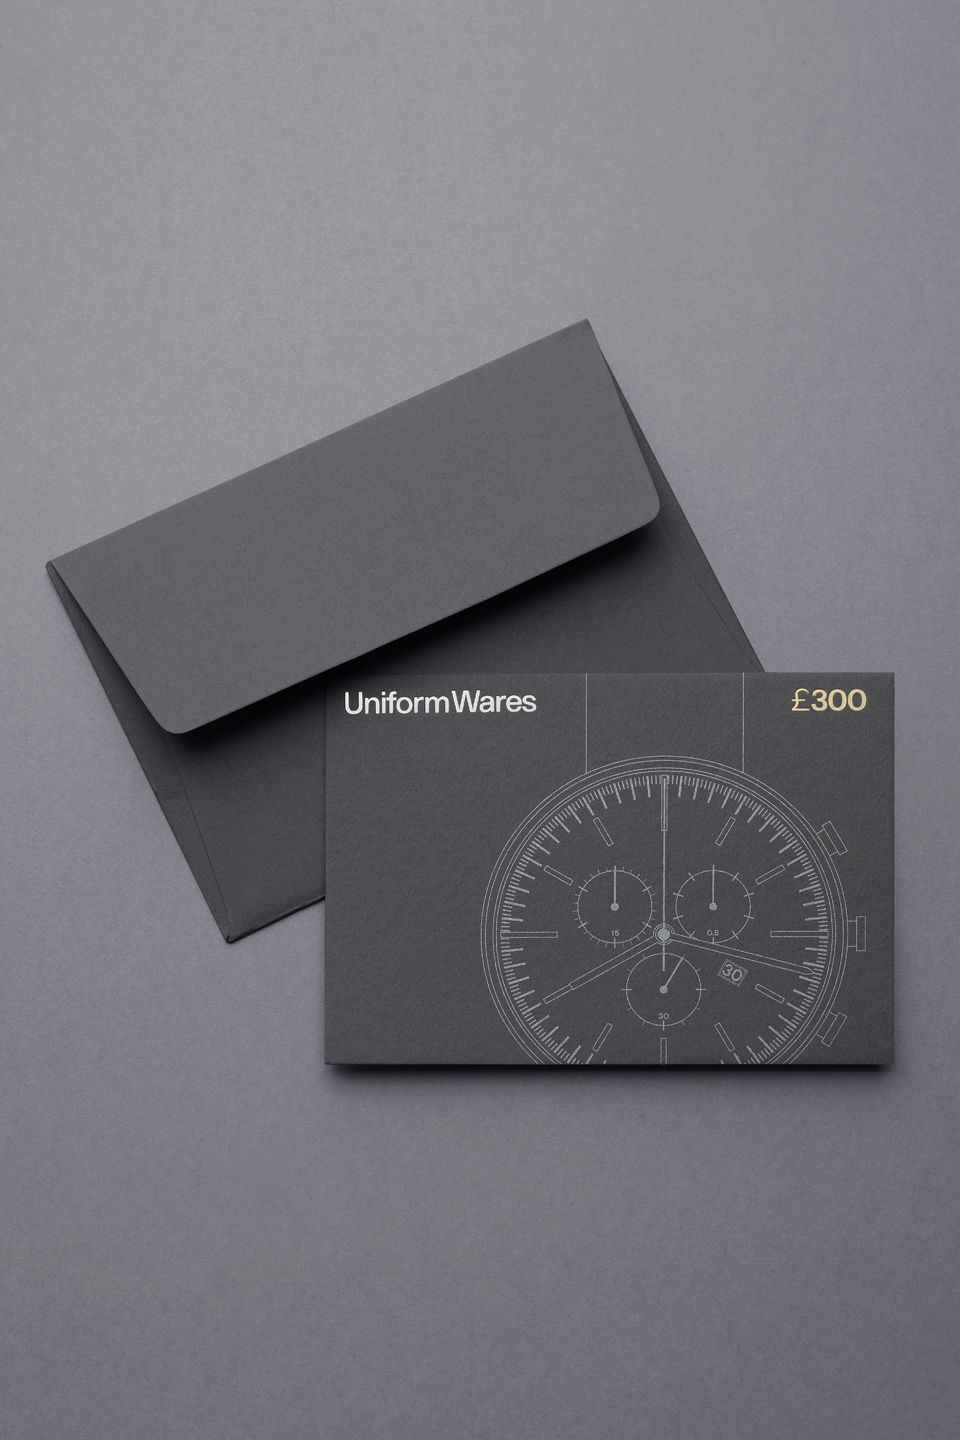 uniformwares gift voucher envelope designing business pinterest